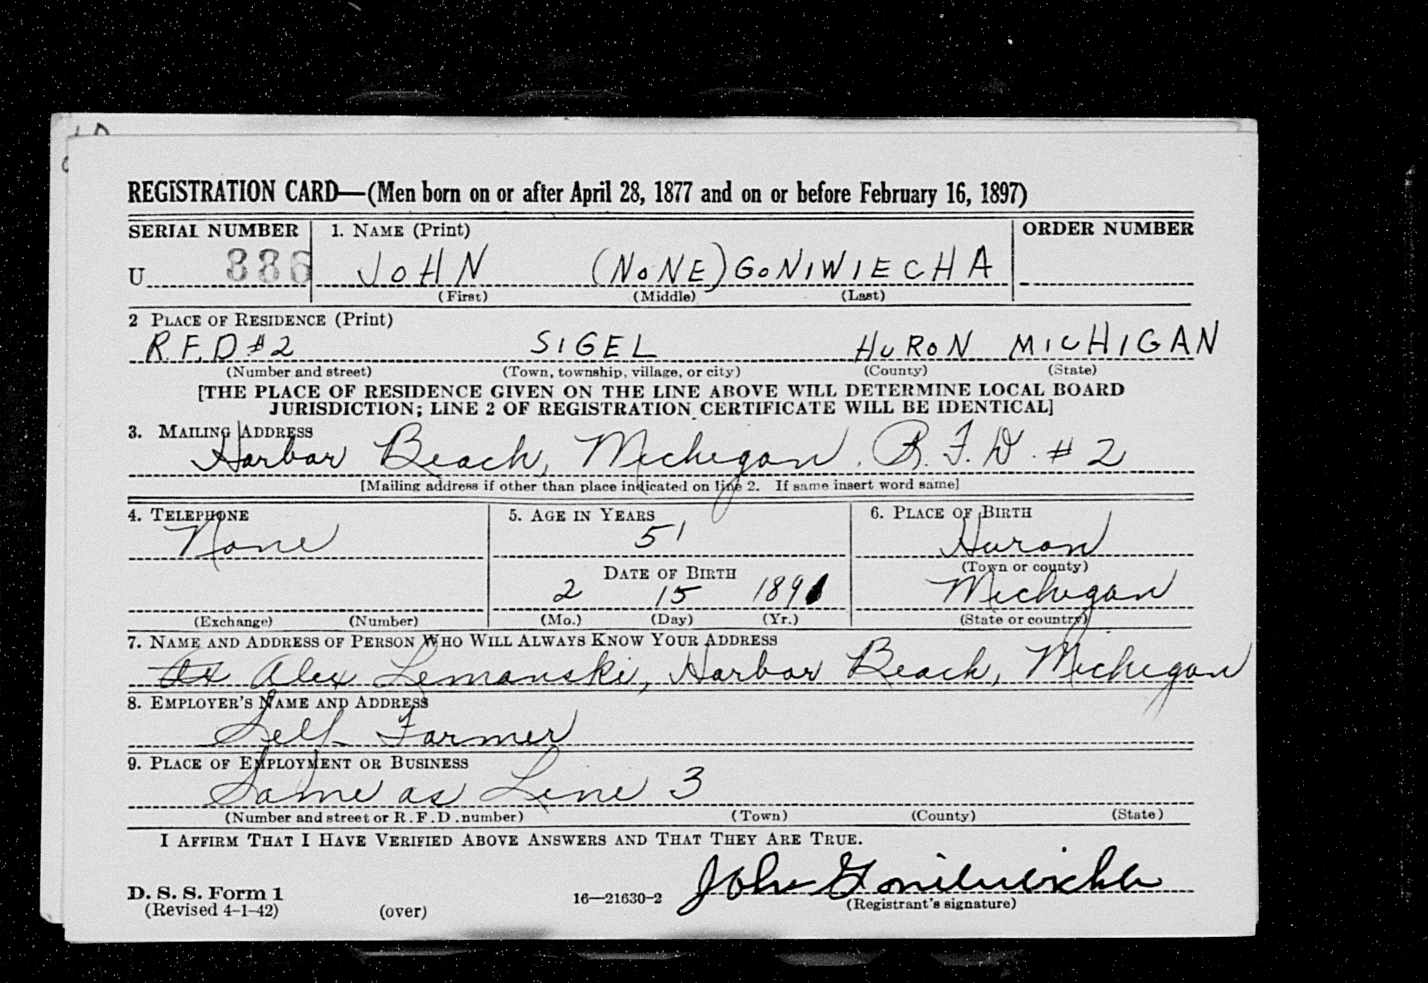 John goniwiecha 1891 1967 find a grave memorial according to a michigan birth certificate john goniwiecha was born to anthony goniwiecha and maria kowalski goniwiecha on february 15 1891 in sigel aiddatafo Image collections